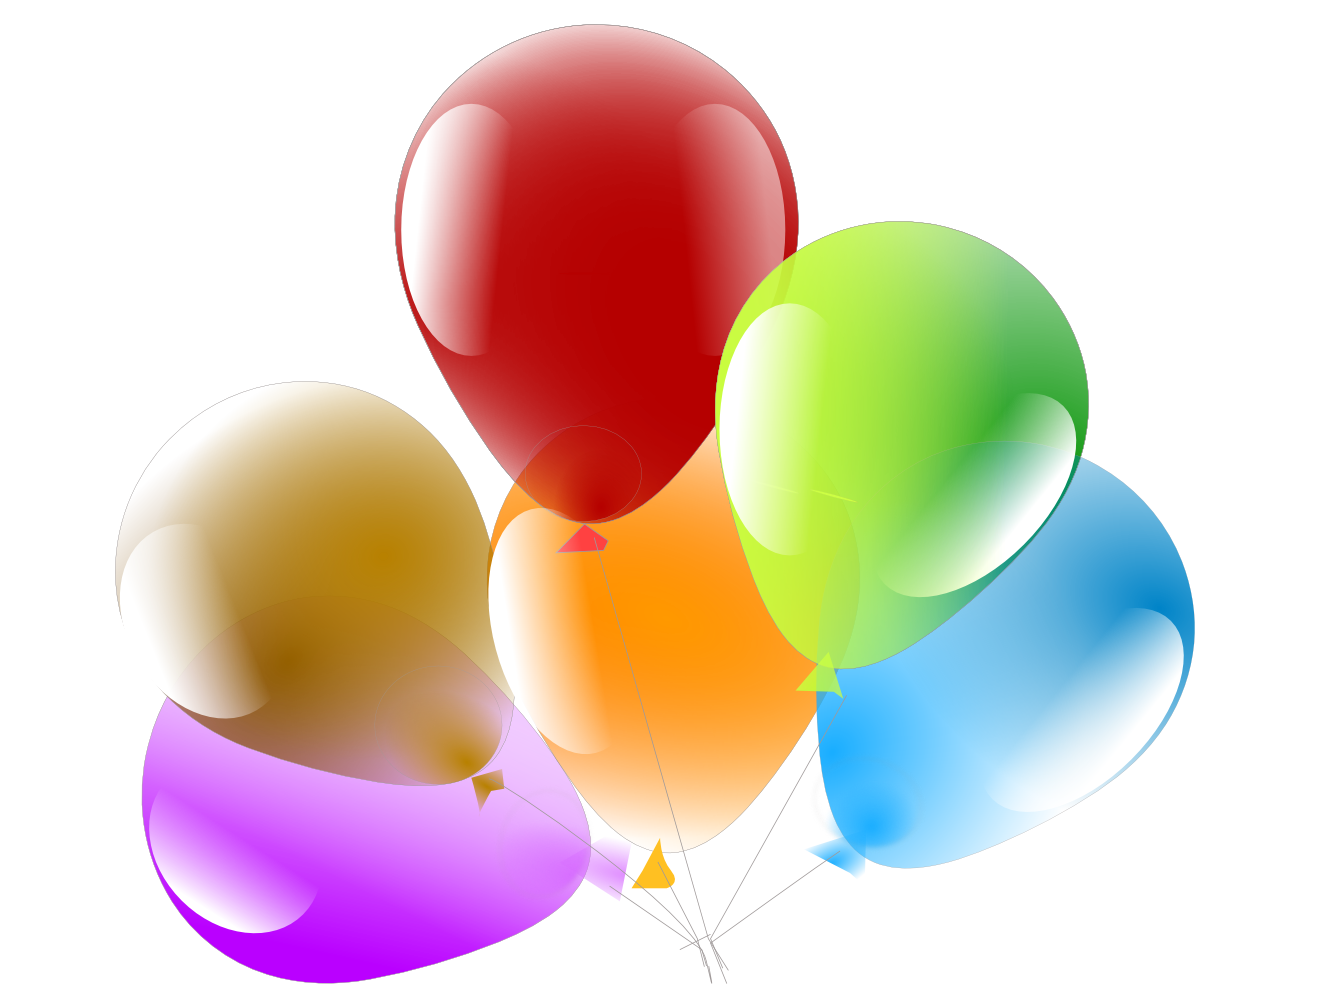 Balloon Png Transparent Background image #28104